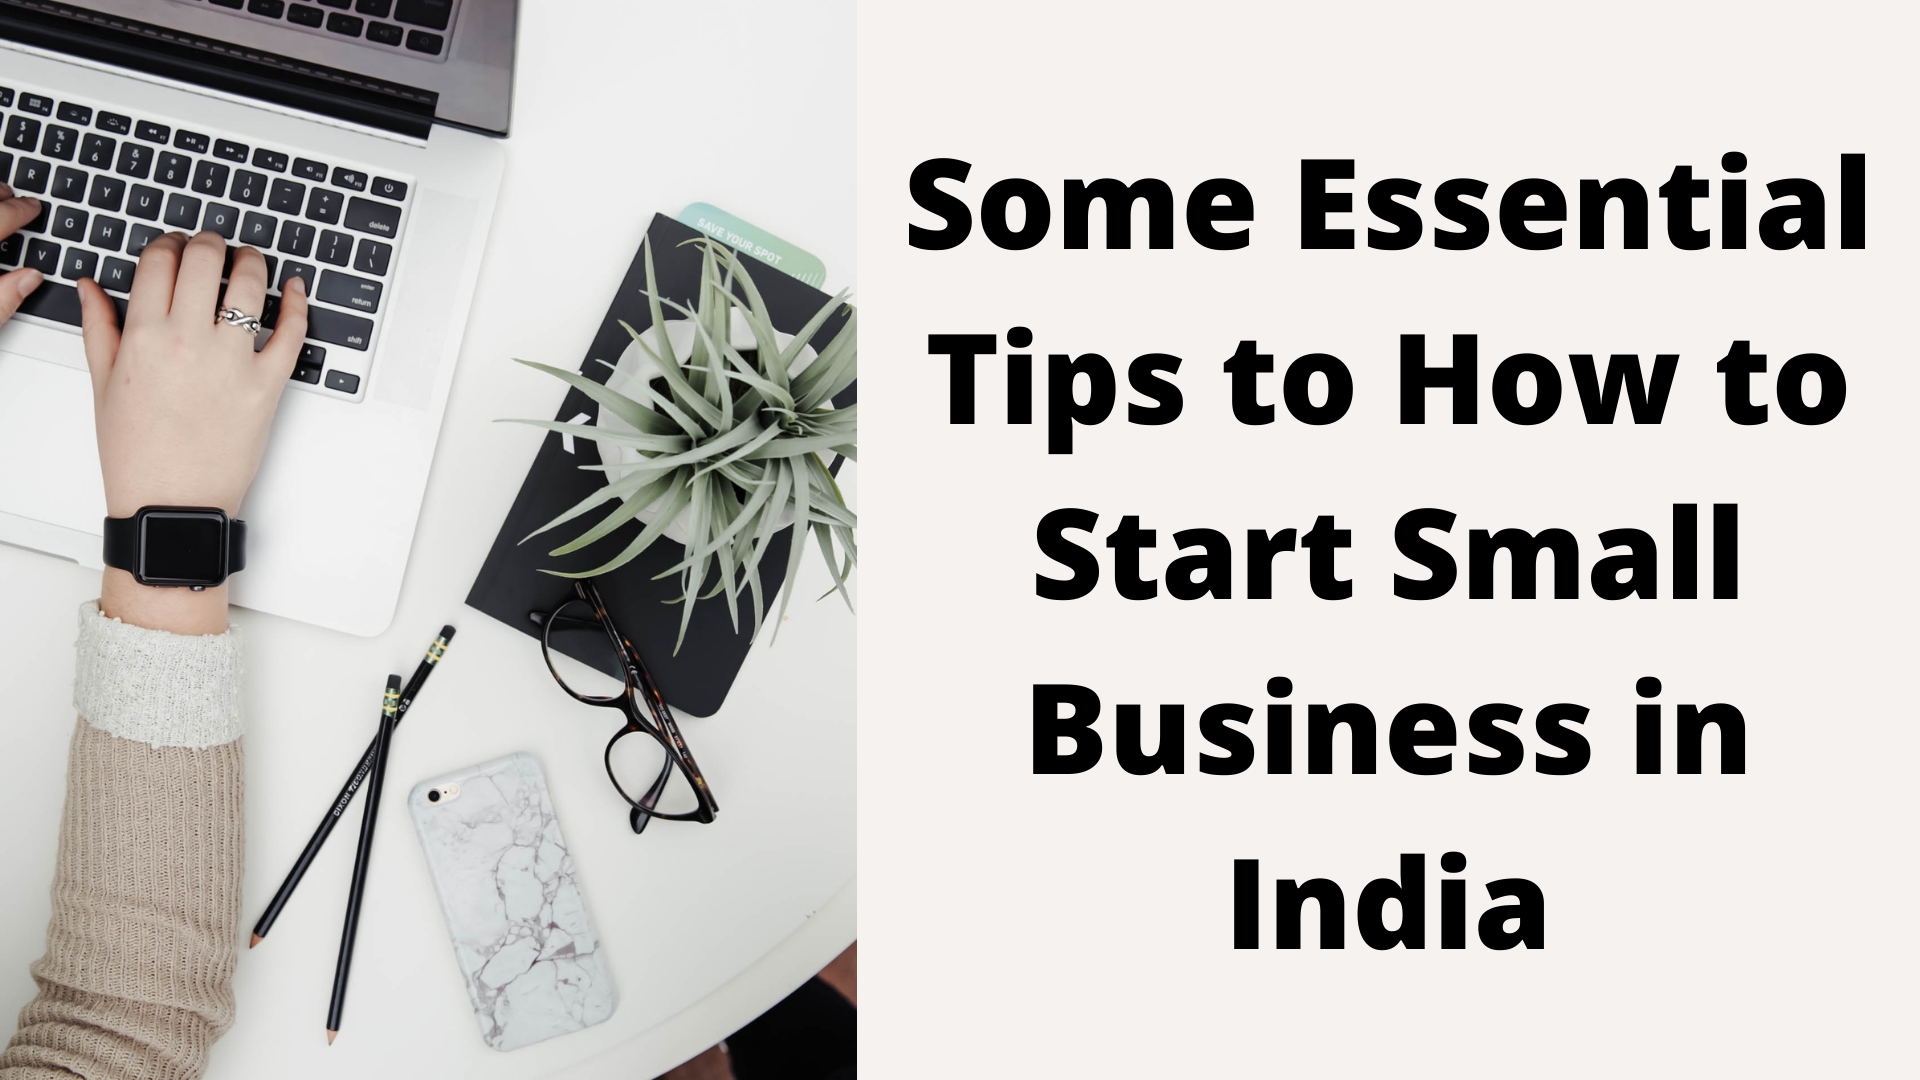 Small Business in India